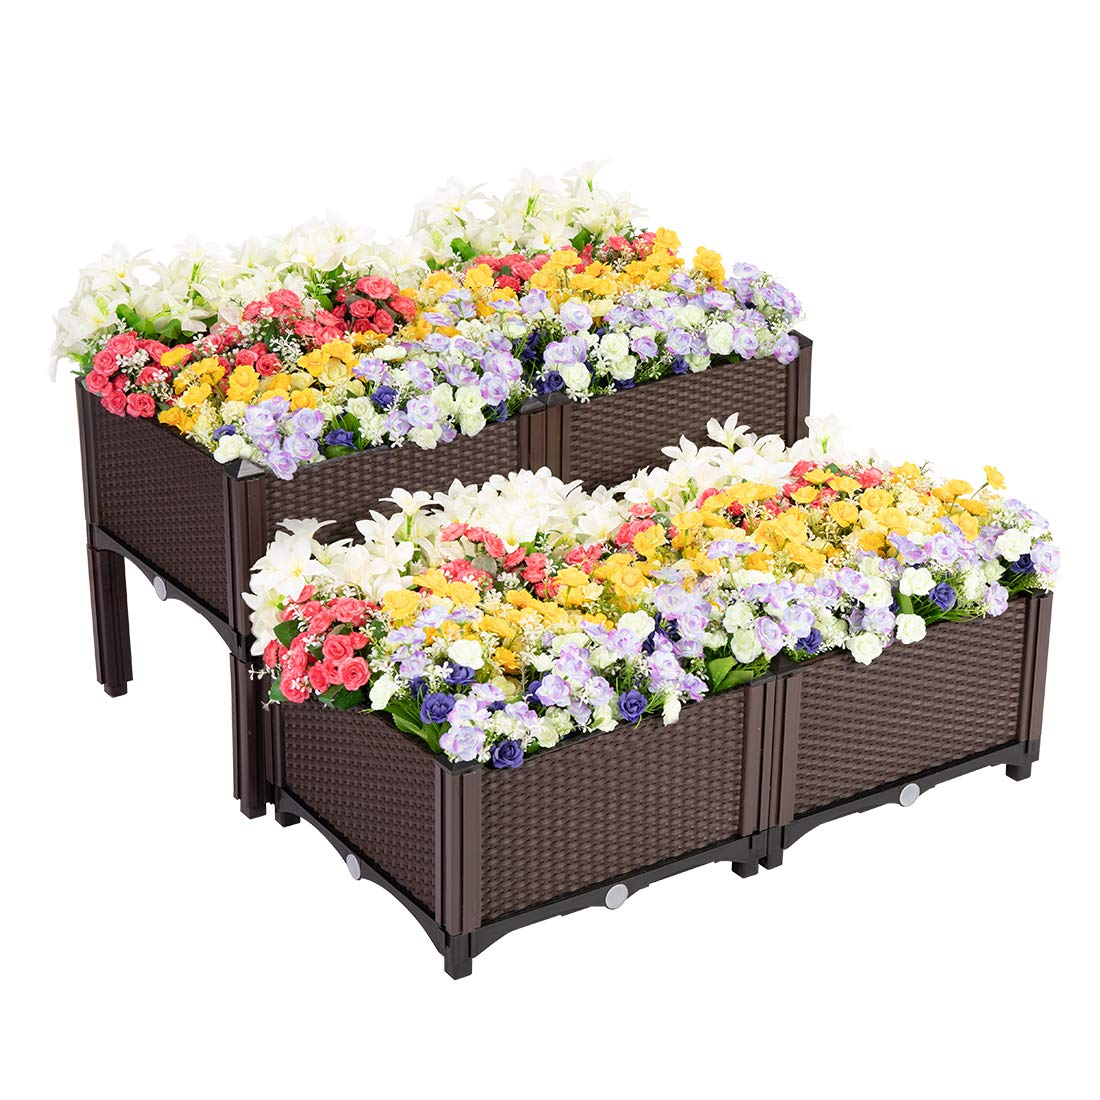 VIVOHOME Elevated Plastic Raised Garden Bed Planter Kit for Flower Vegetable Grow Brown Set of 4